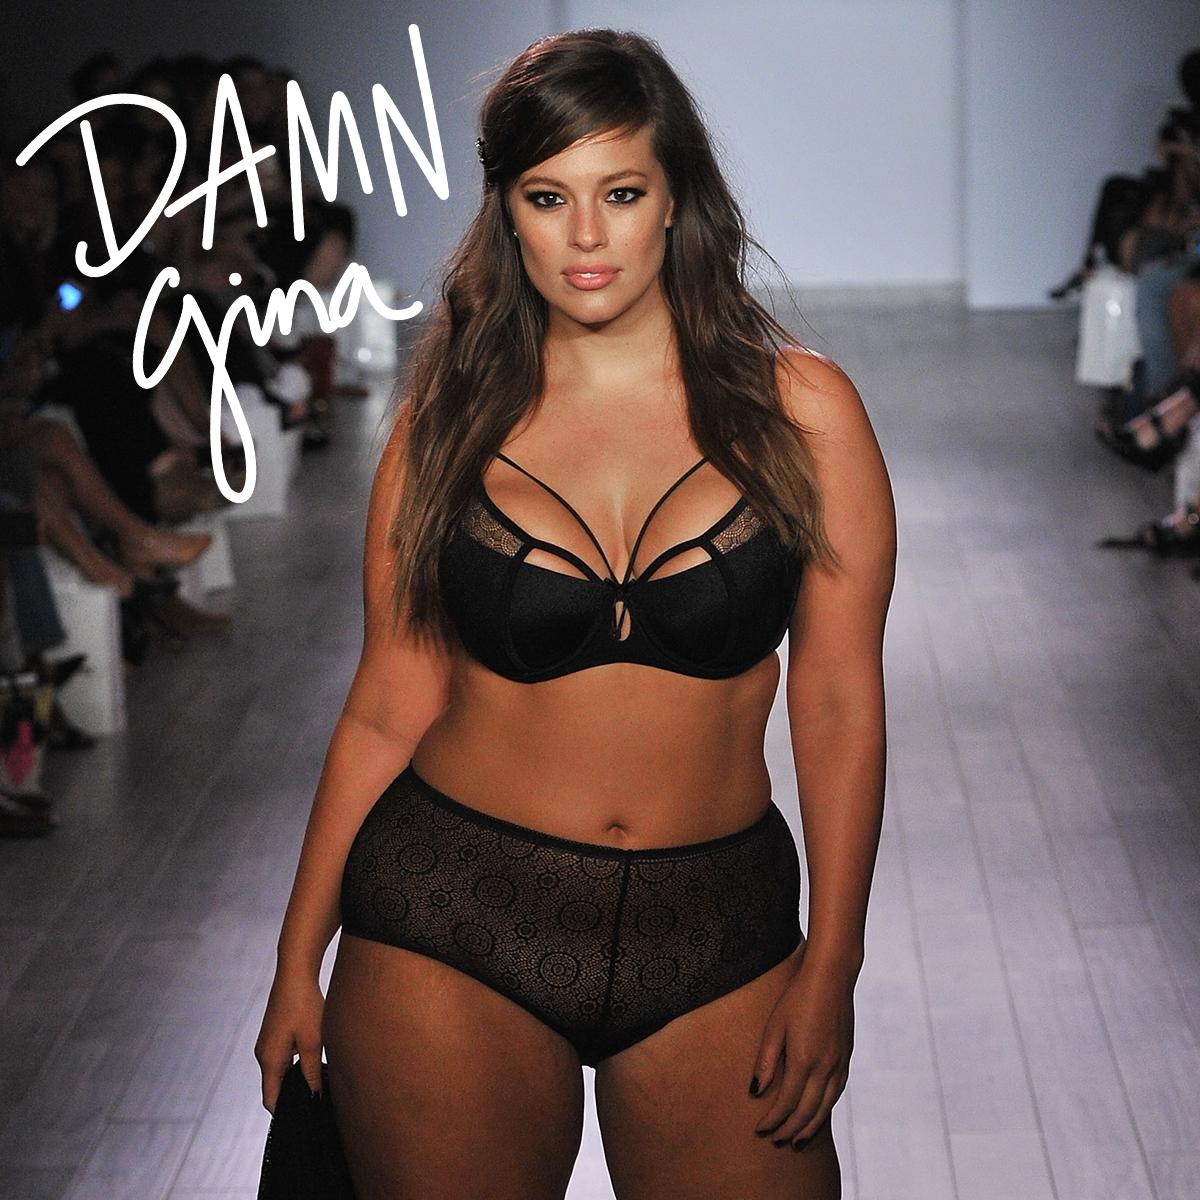 DAAAAAAMN Gina! I'm obsessed with model Ashely Graham's curves!! http://t.co/4JWmdy7q43 http://t.co/YGPo8EwbeG